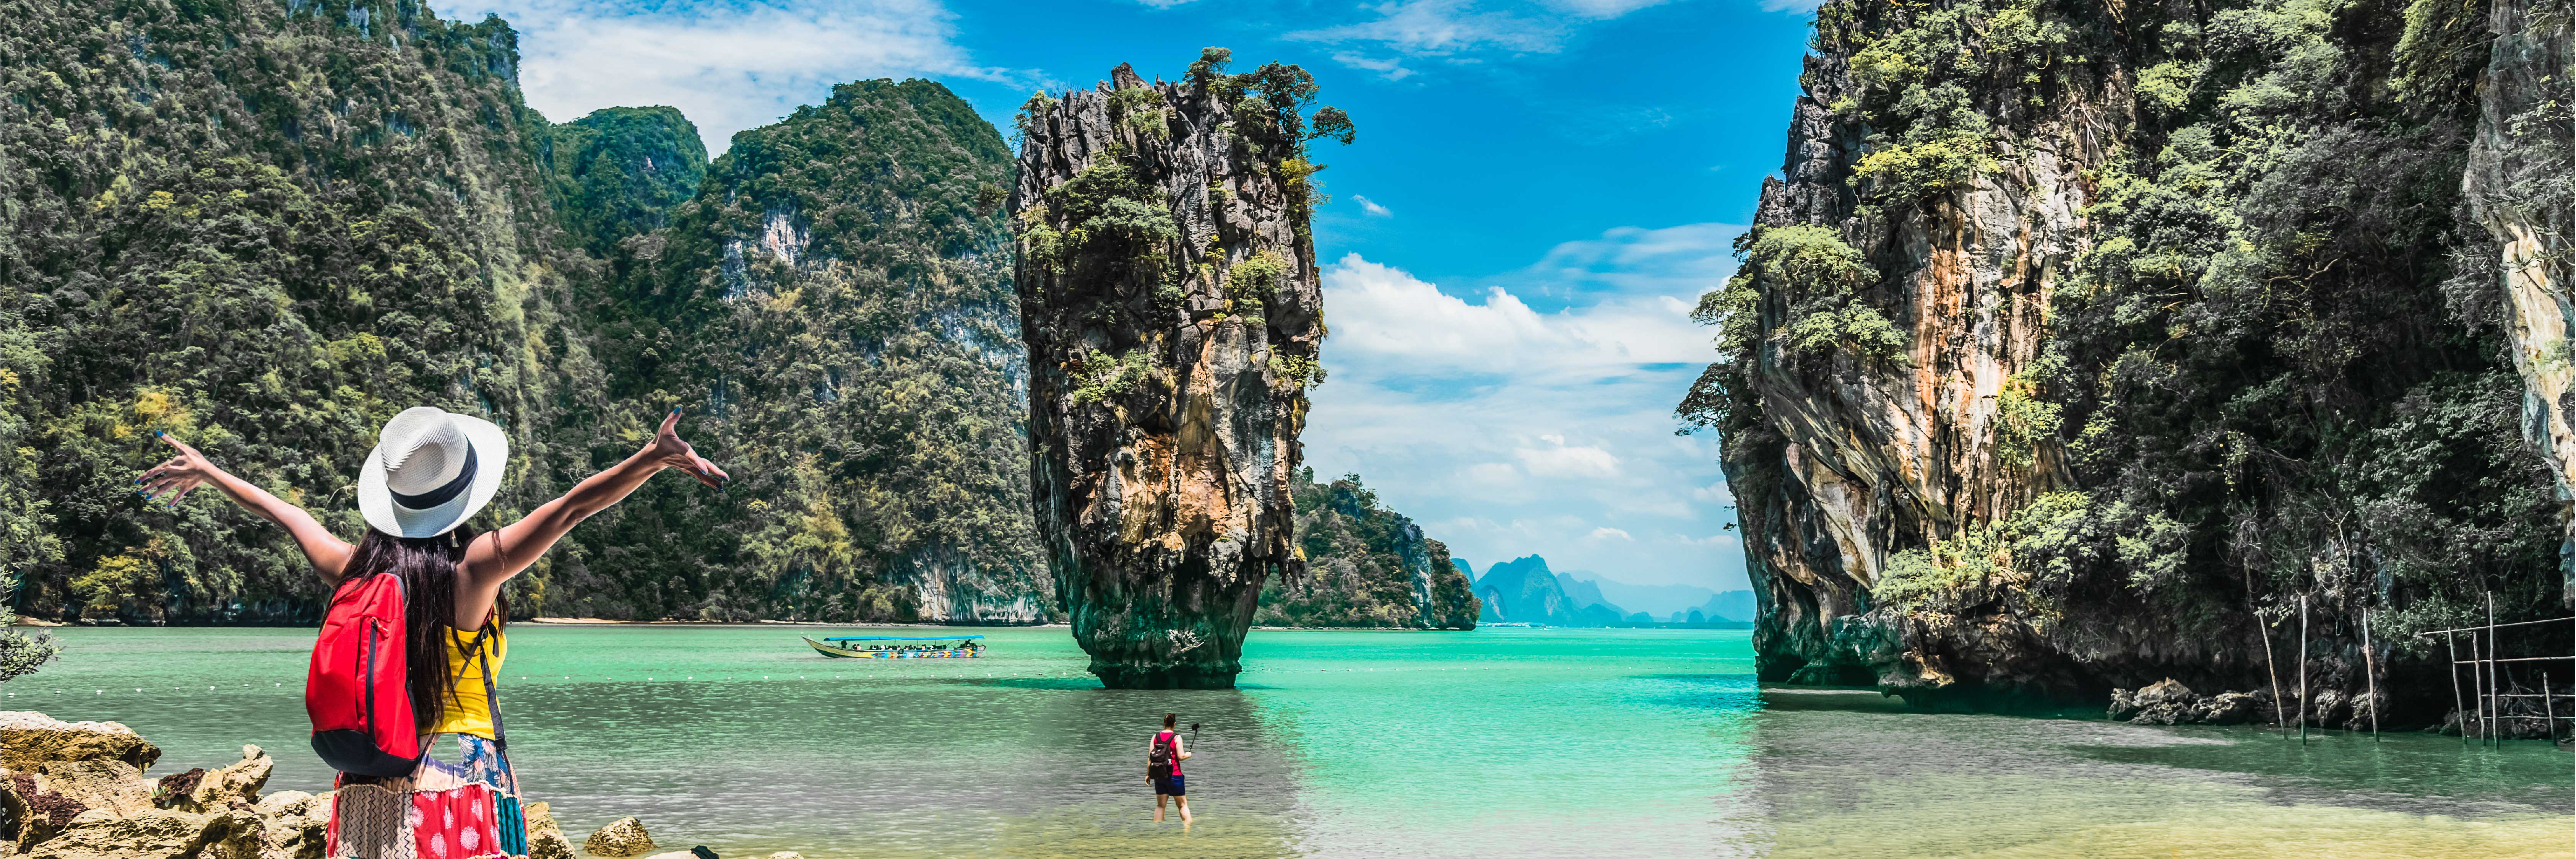 James Bond Island Tour By Speed Boat From Phuket Full Day Book Now Tripguru